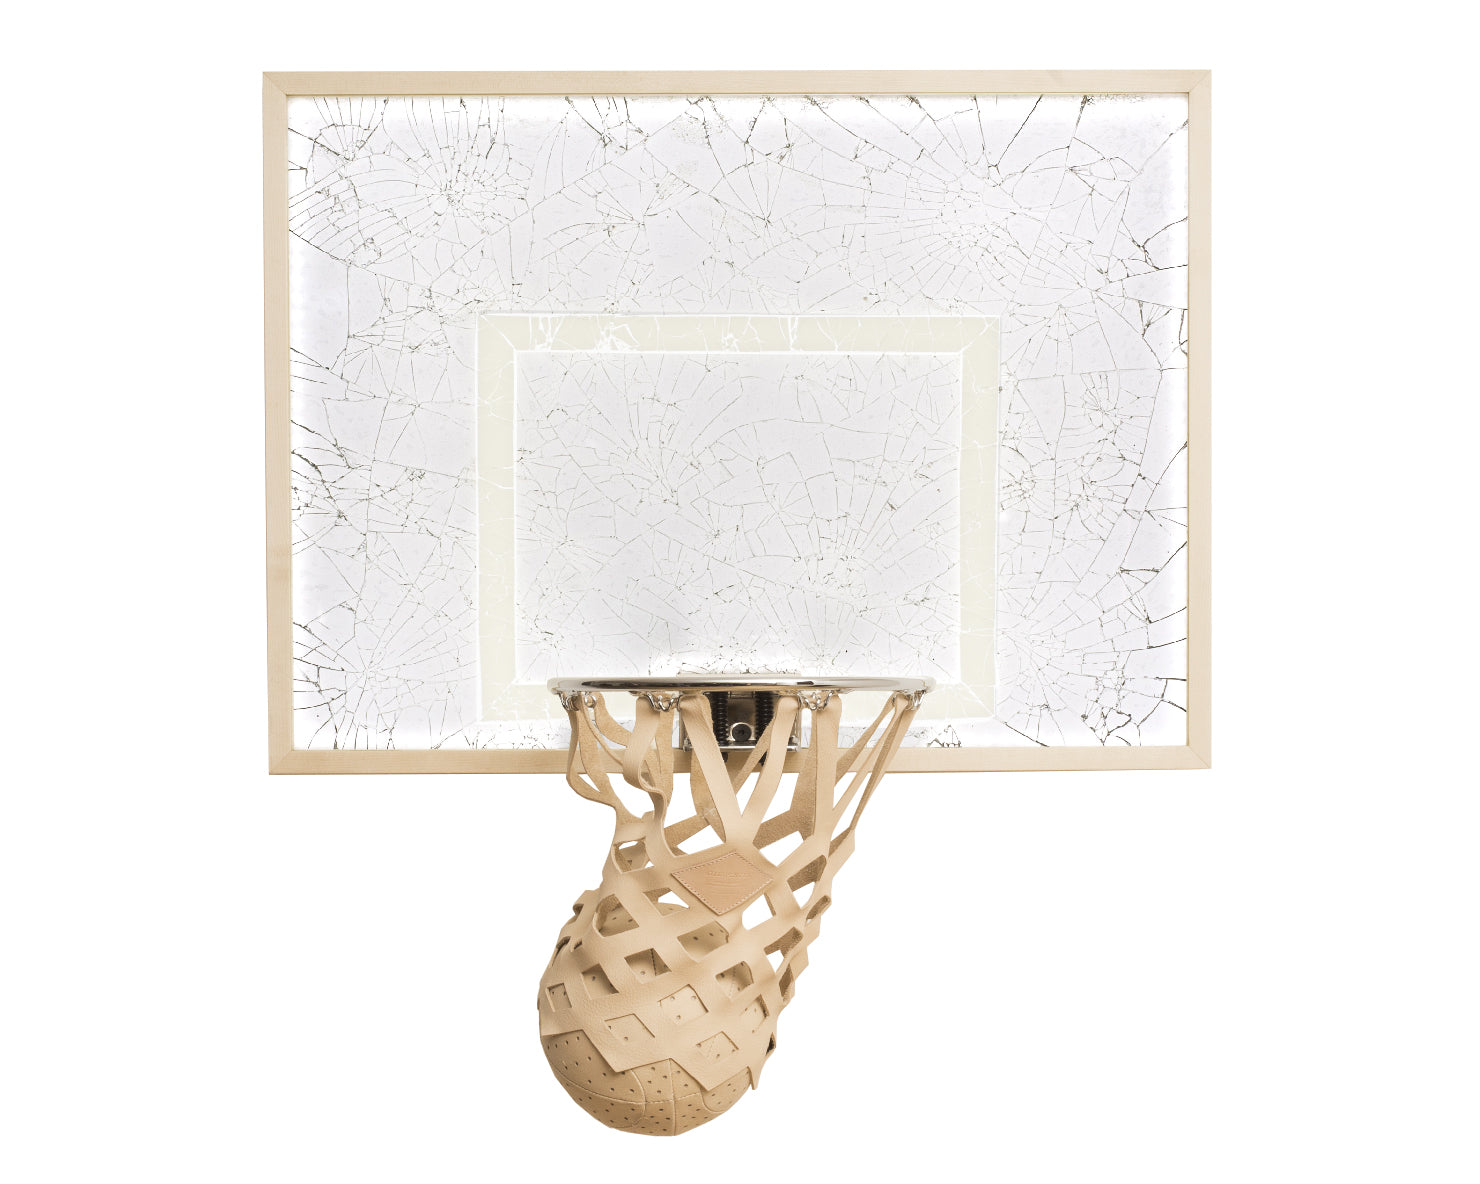 SHATTERED DREAMS INDOOR MINI BASKETBALL KIT | KILLSPENCER® - Chrome Rim and Glass Lexan Maple